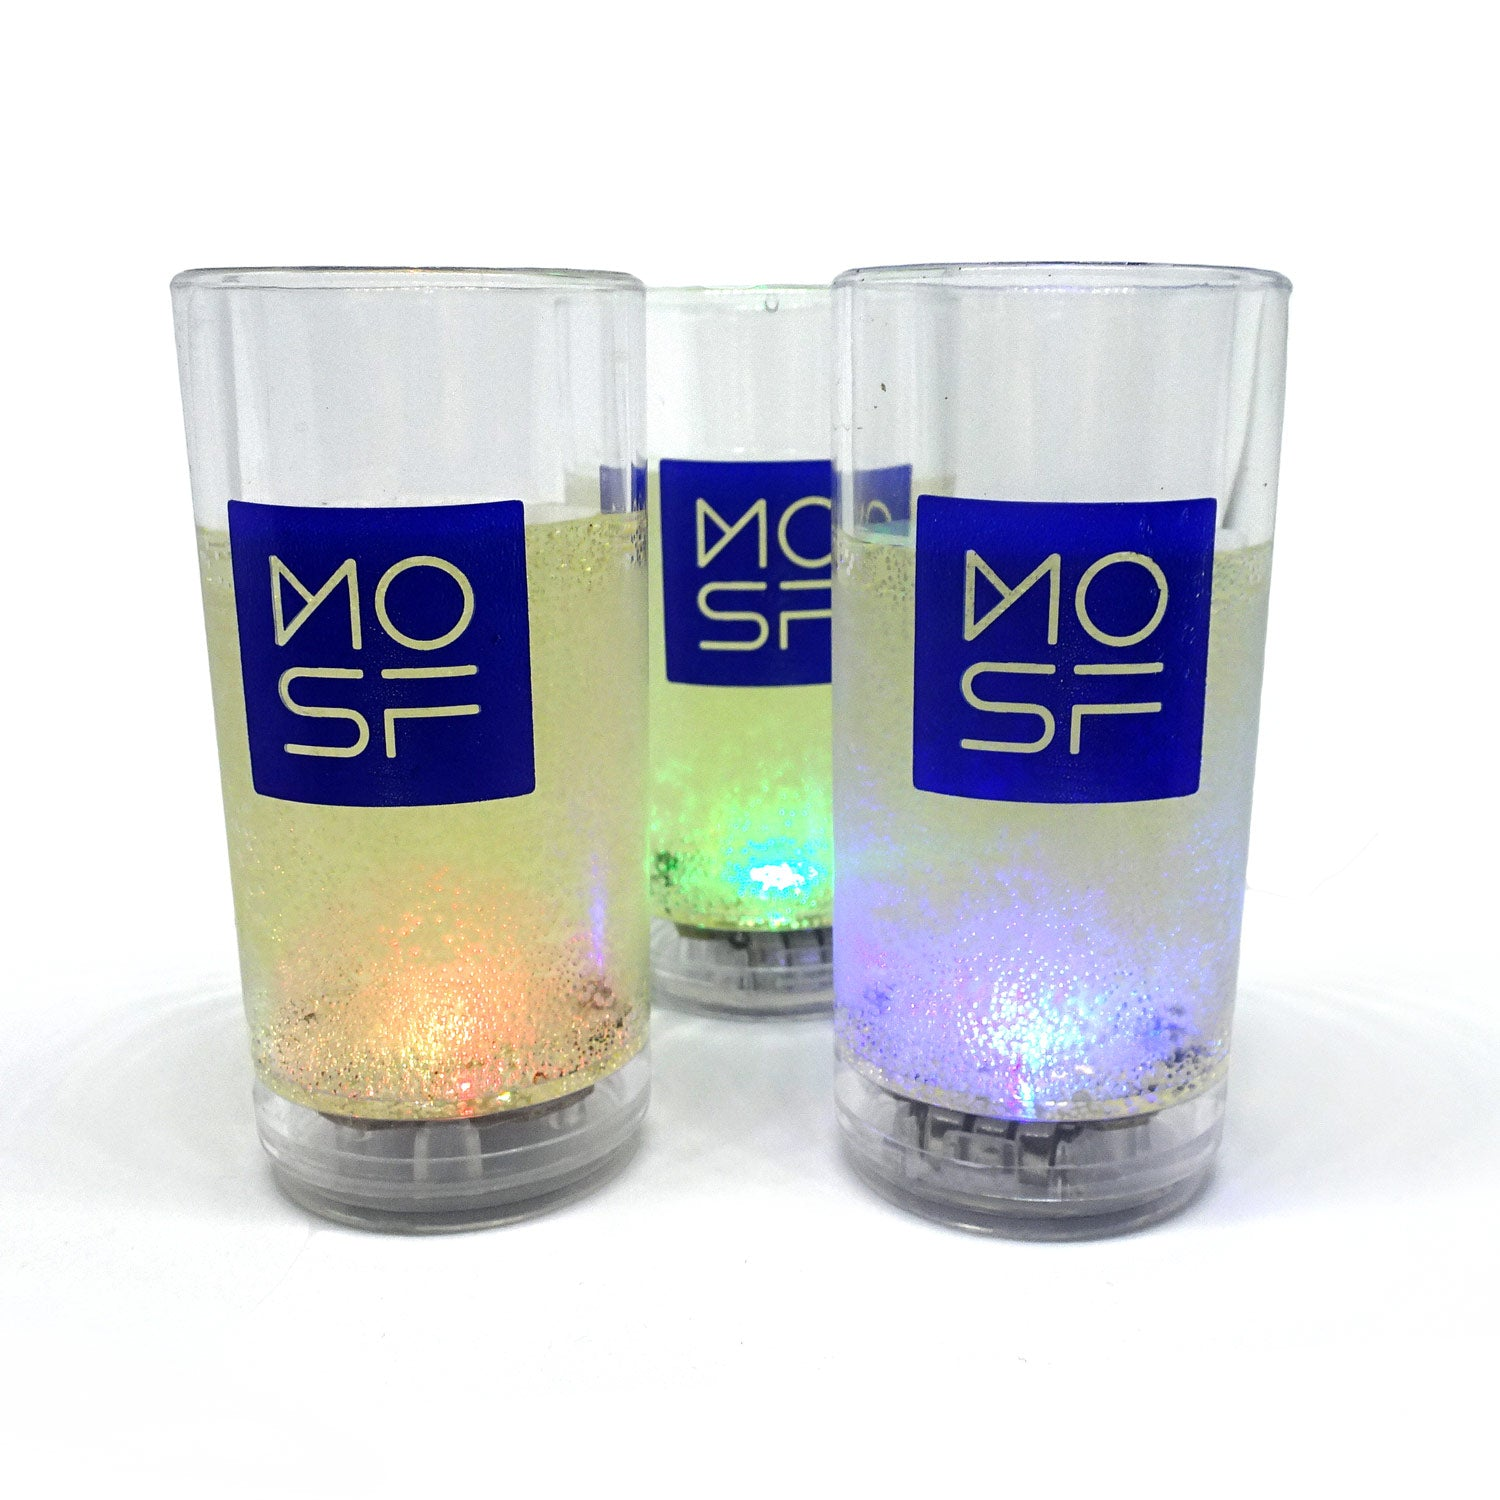 Museum of Science Fiction Brand ID Shot Glasses